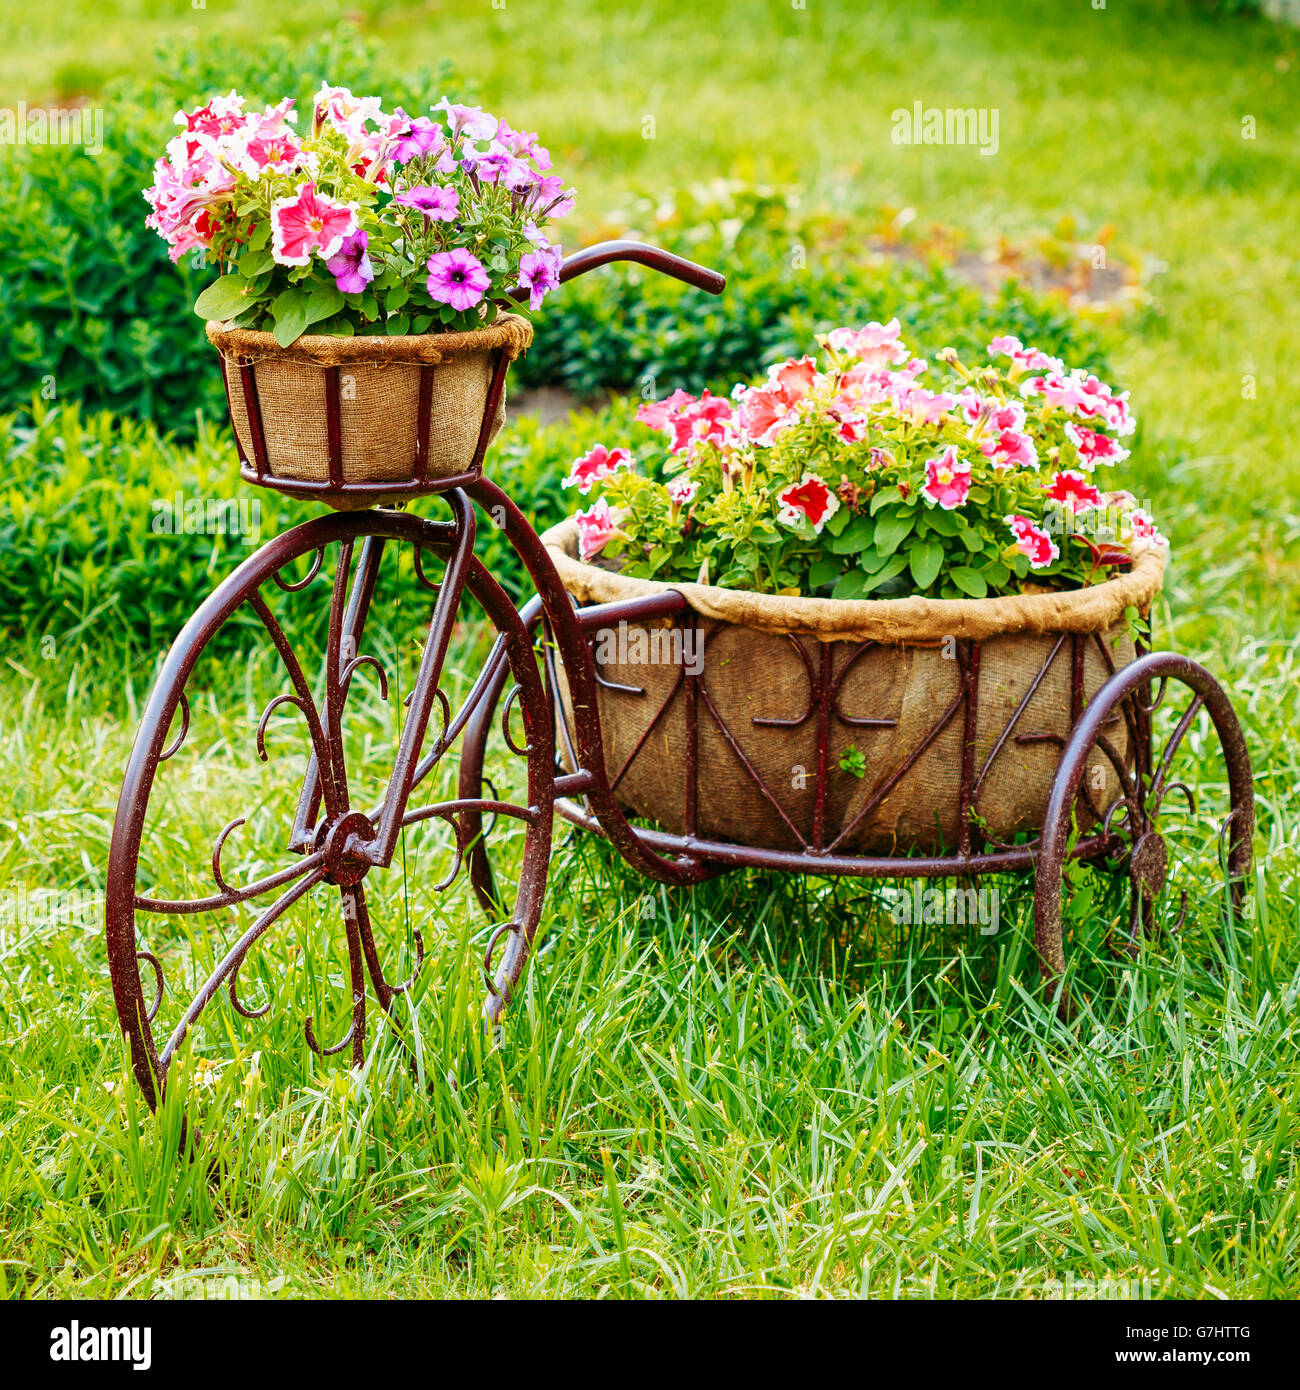 Pink Bicycle With Flowers Stockfotos & Pink Bicycle With Flowers ...